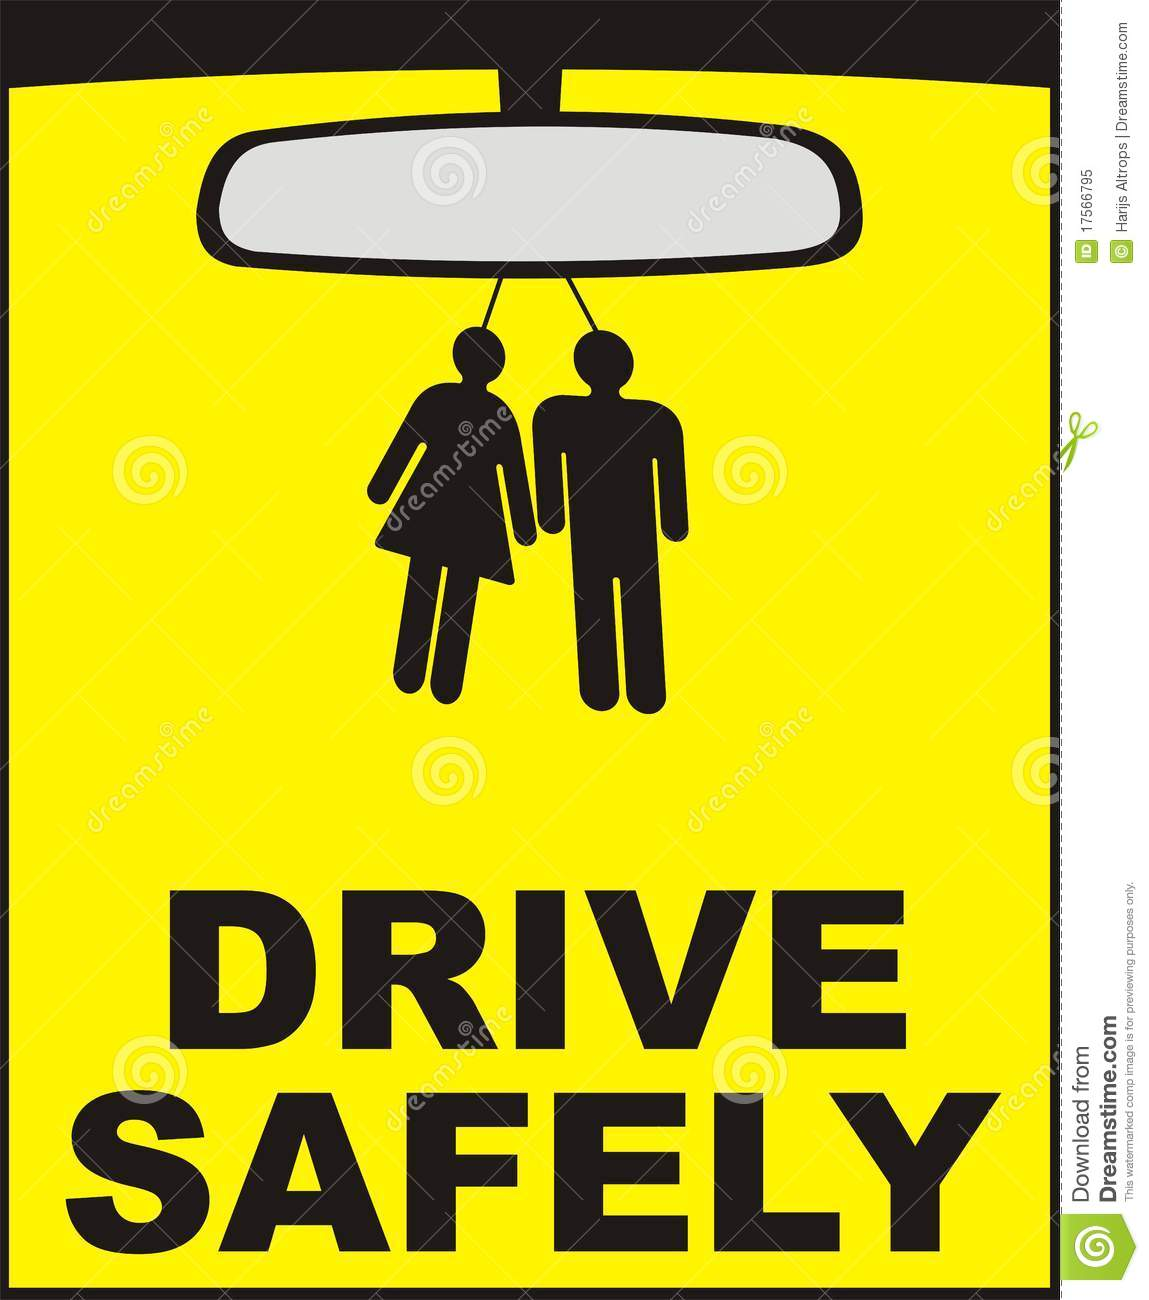 Drive Safely Vector Stock Illustration. Illustration Of